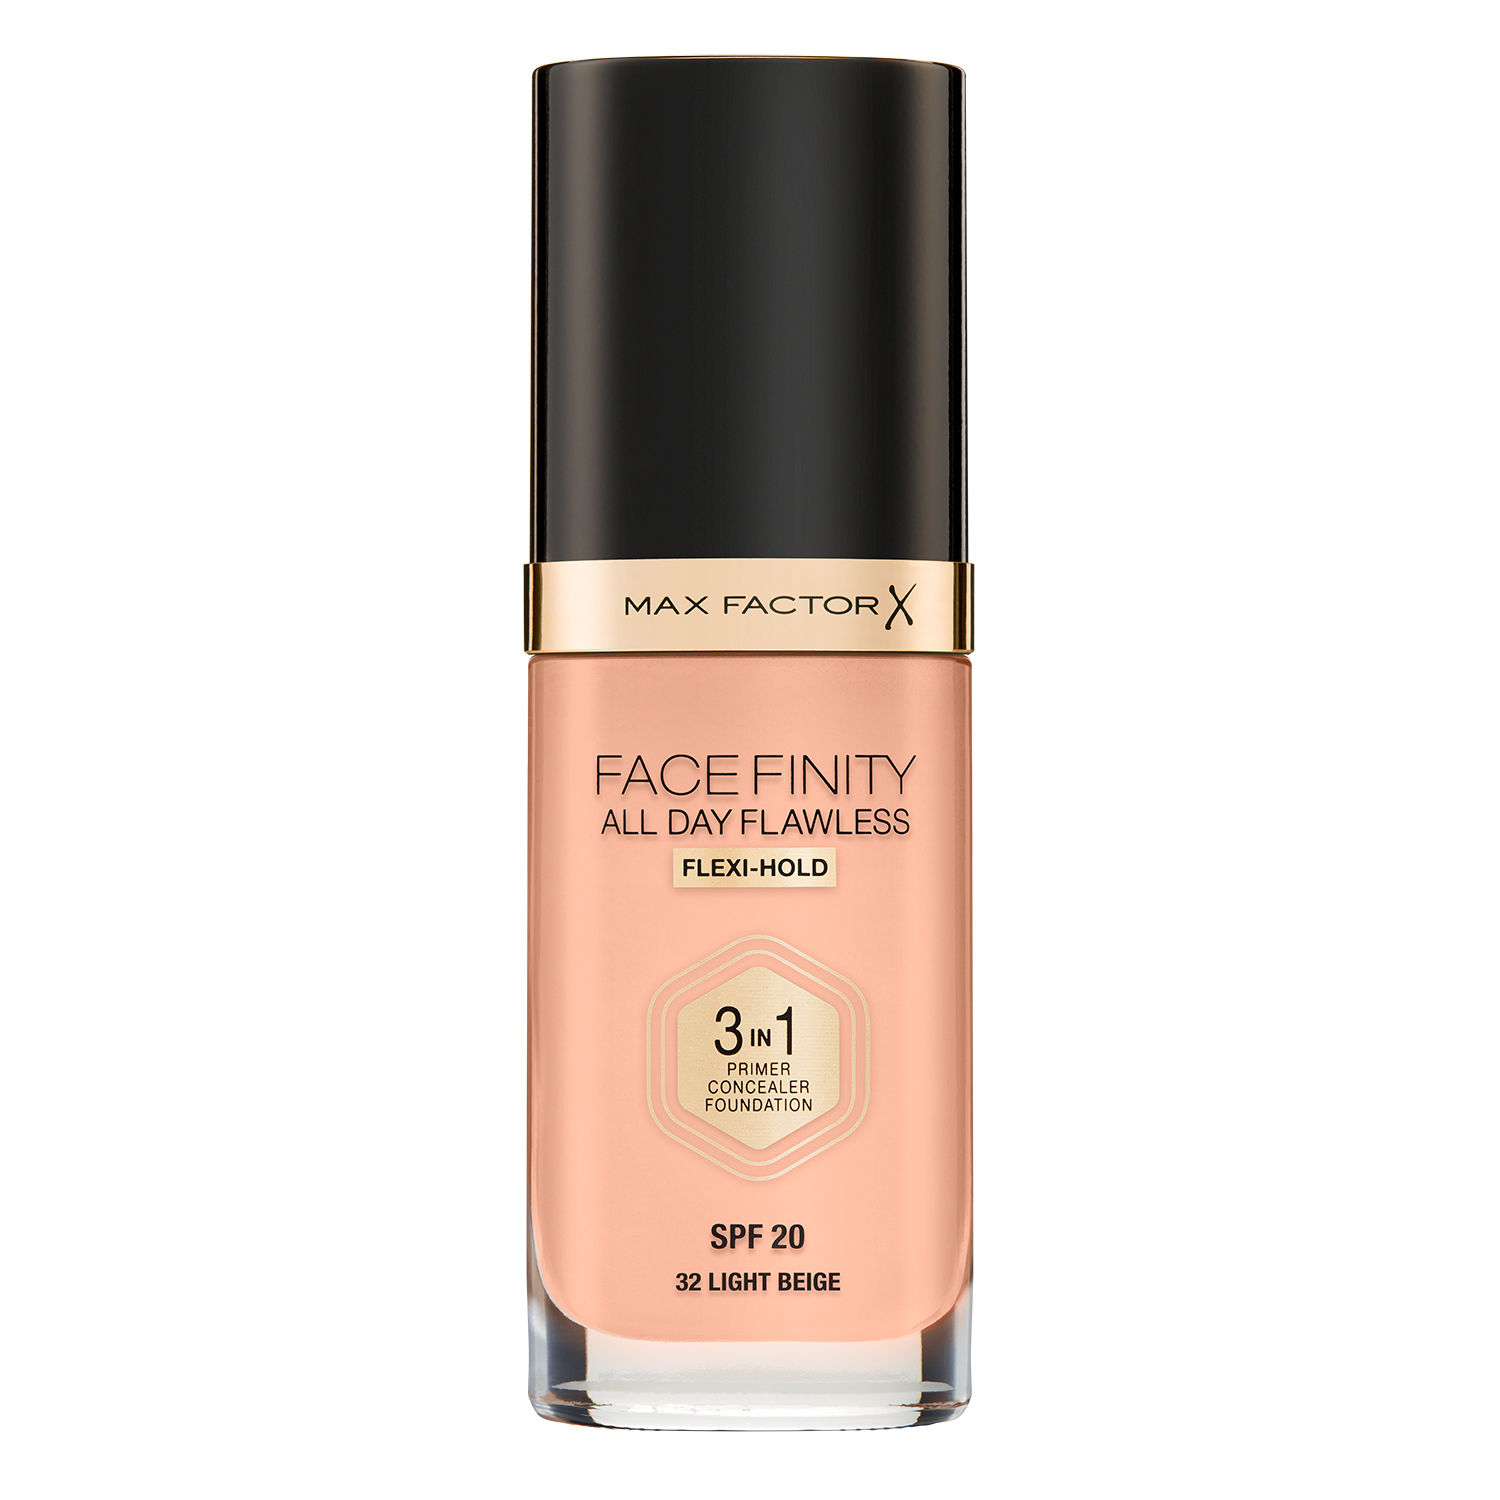 Тональная основа Max Factor Facefinity All Day Flawless 3-in-1, 32 тон light beige